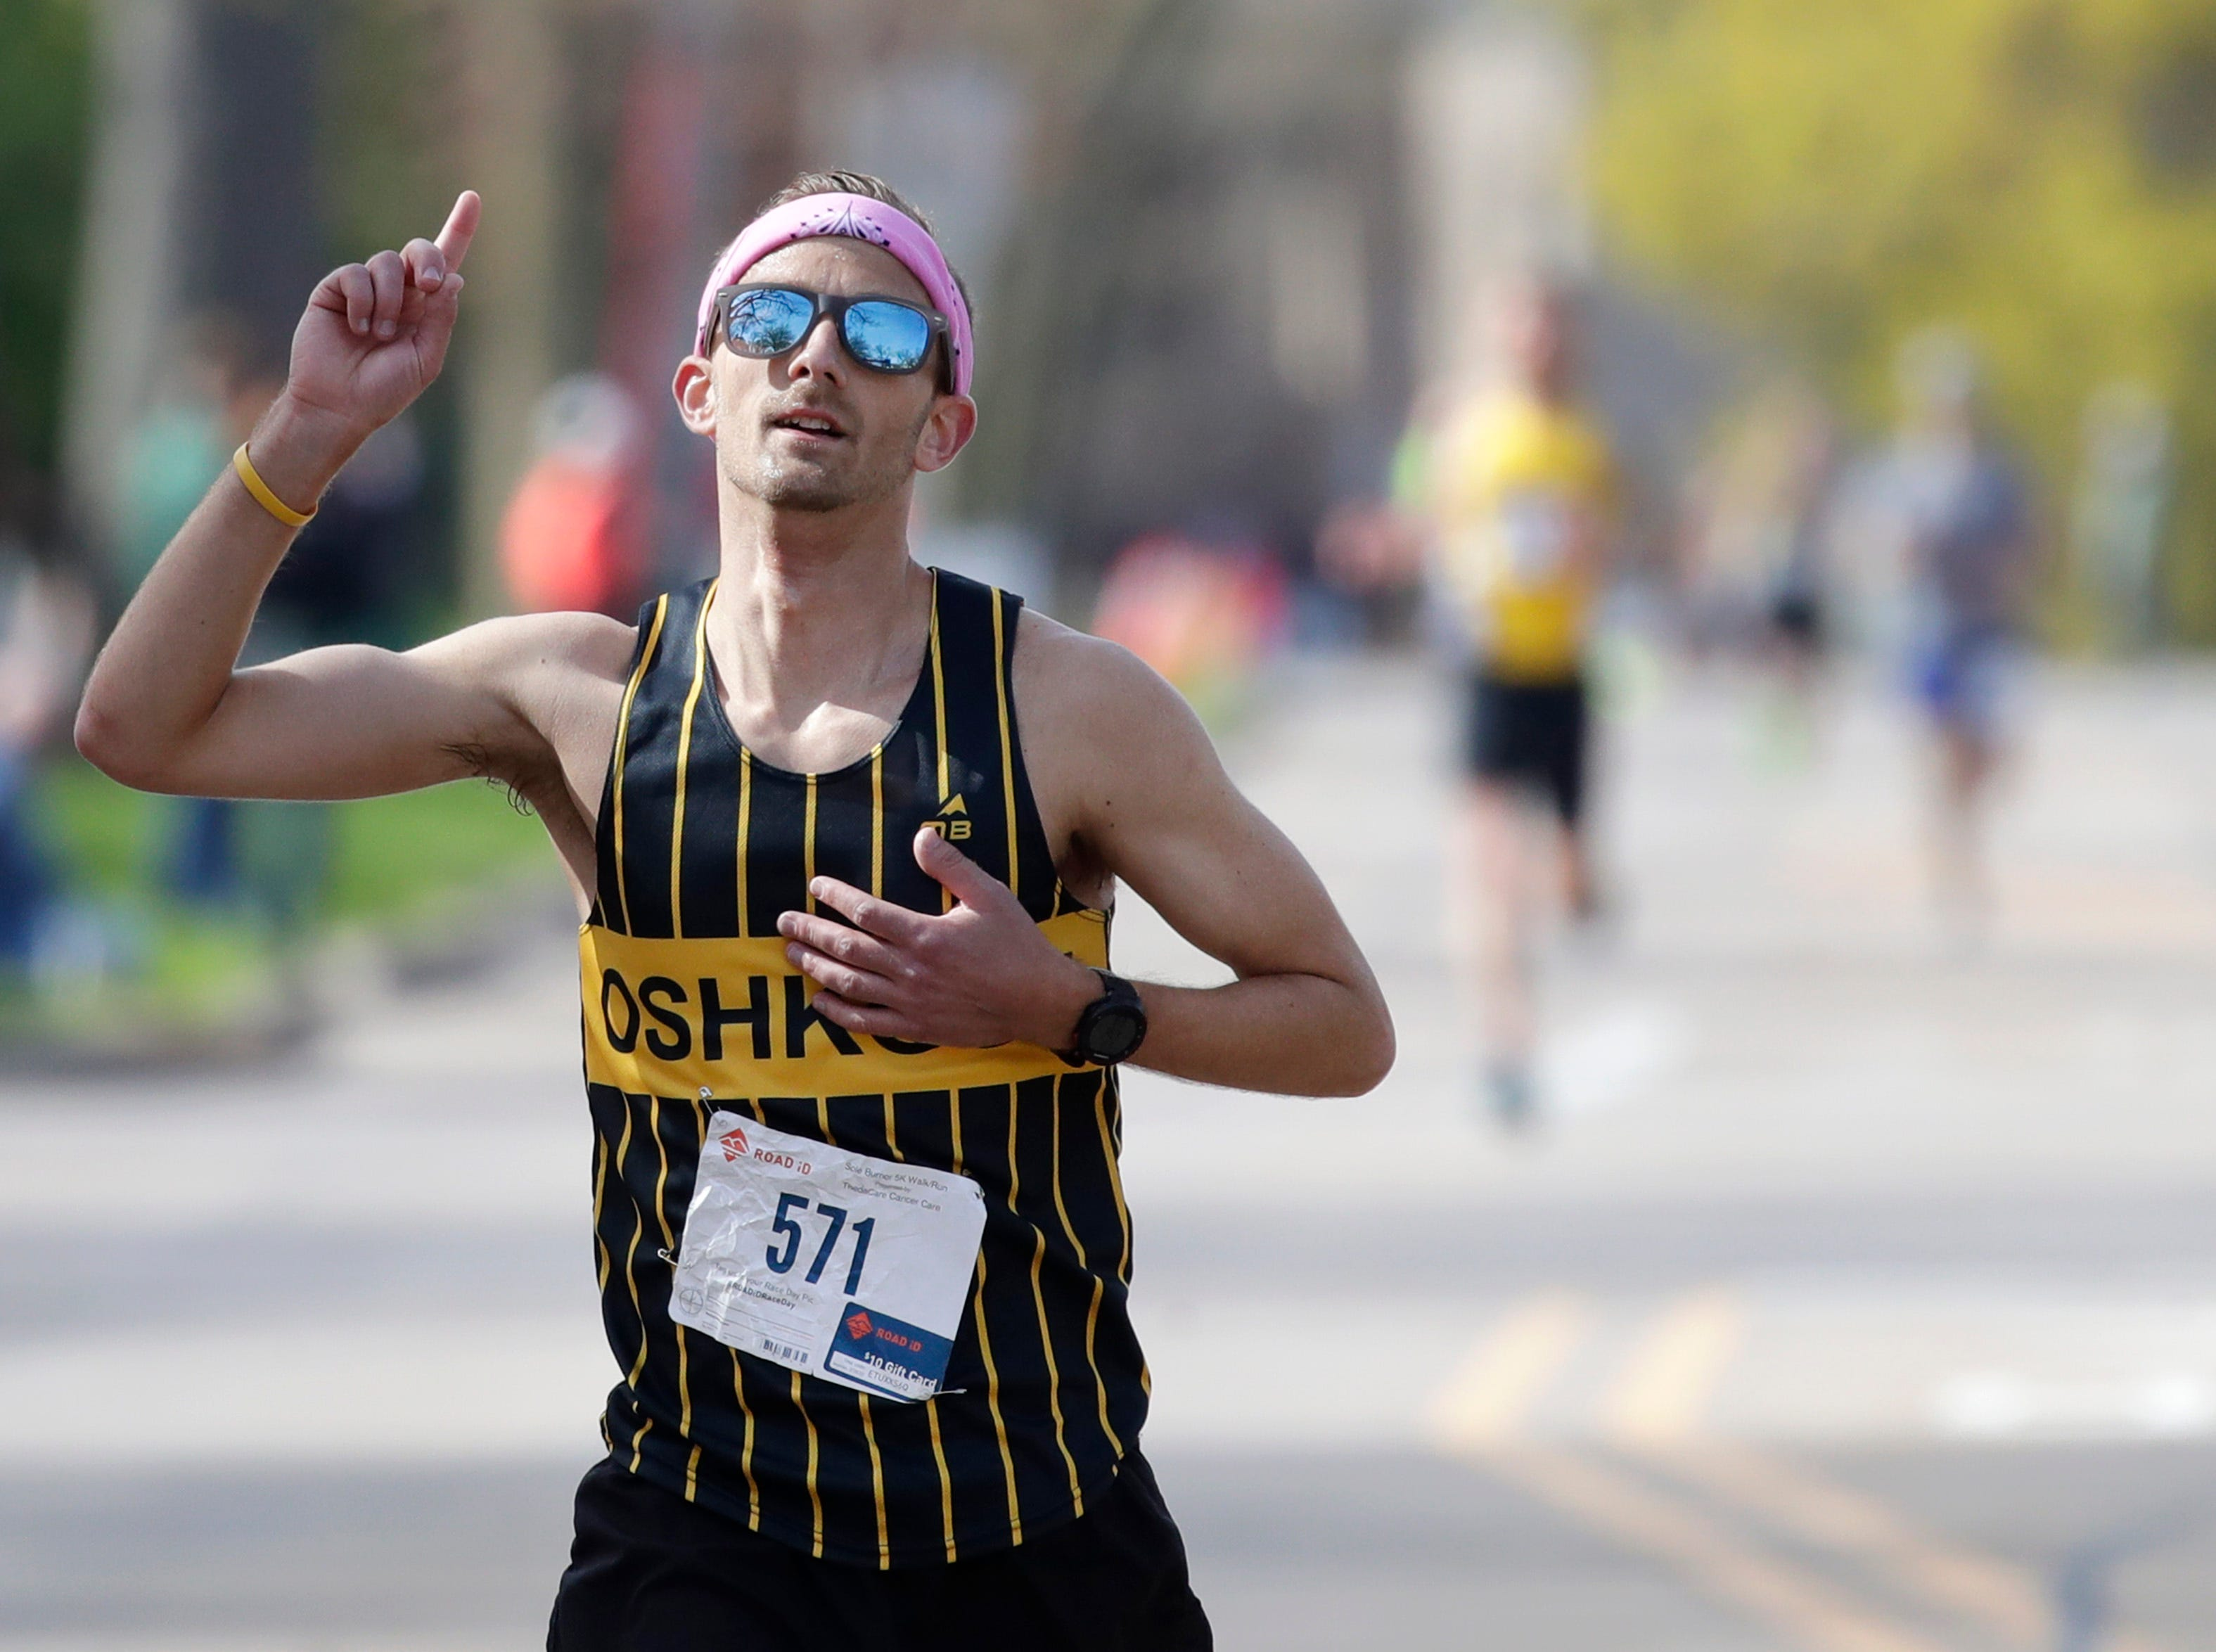 Erik Hofferber, of Neenah, takes first place in the Sole Burner 5K Walk-Run Saturday, May 11, 2019, in Appleton, Wis. Danny Damiani/USA TODAY NETWORK-Wisconsin